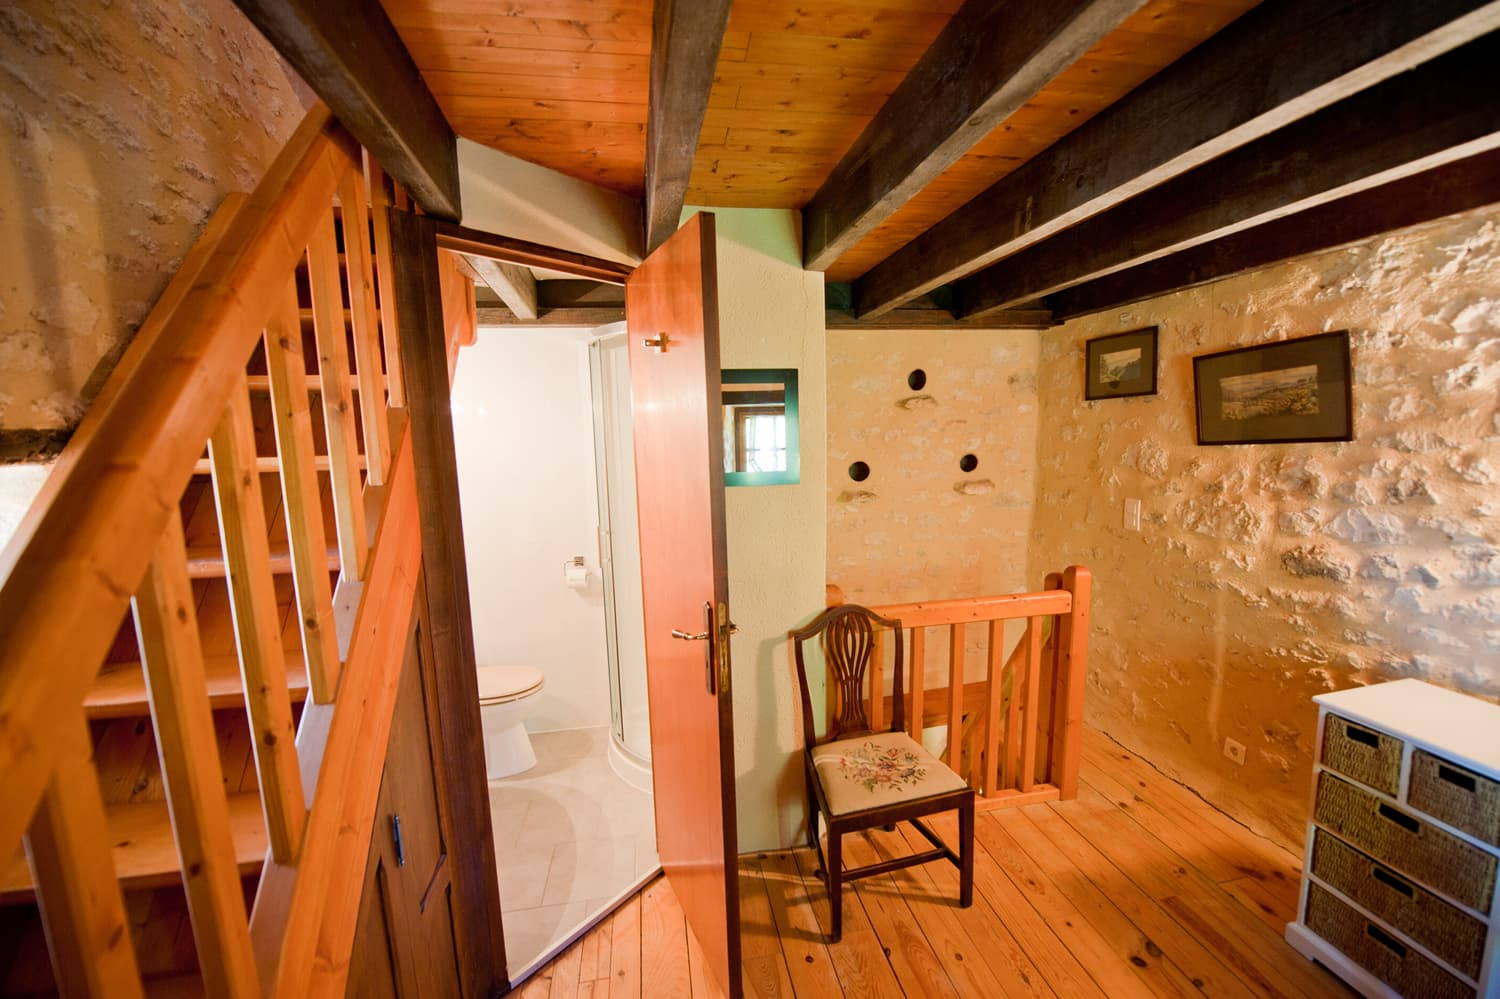 Bathroom in pigeonnier tower